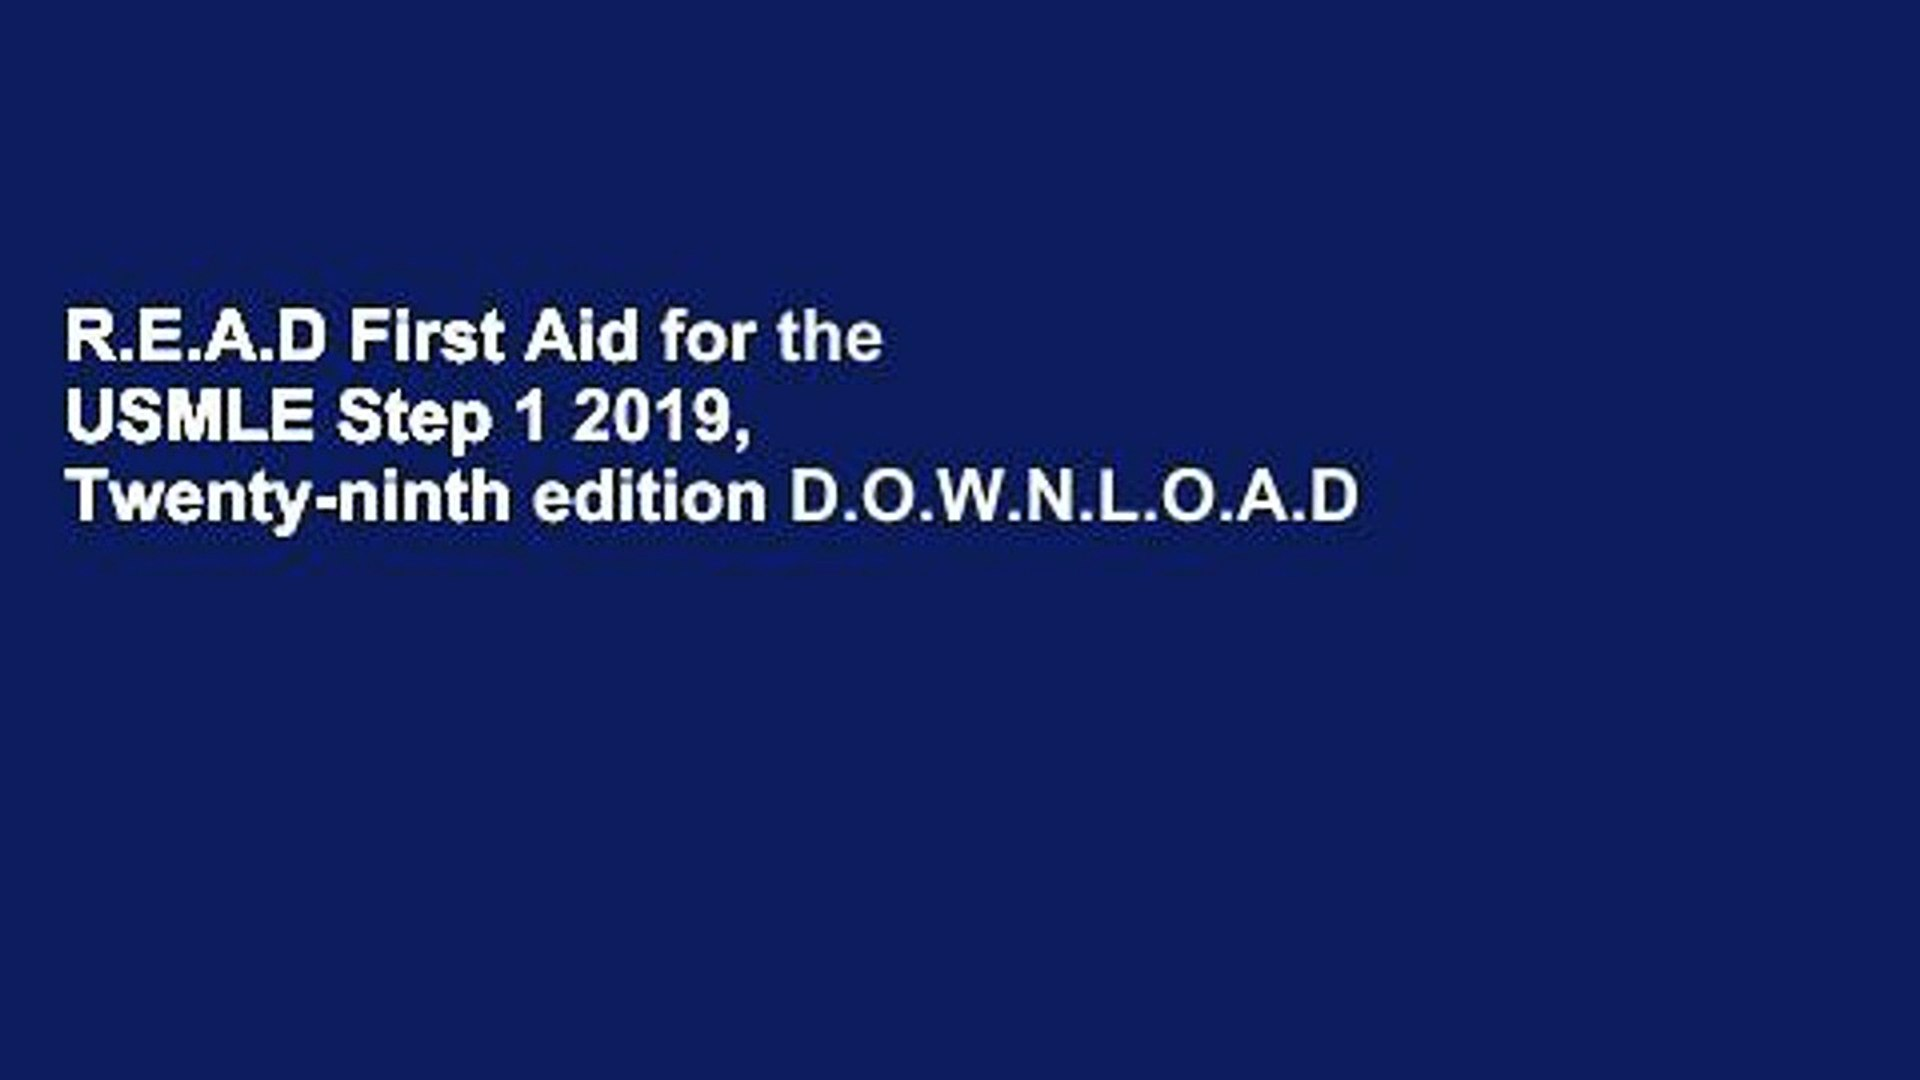 R E A D First Aid for the USMLE Step 1 2019, Twenty-ninth edition  D O W N L O A D